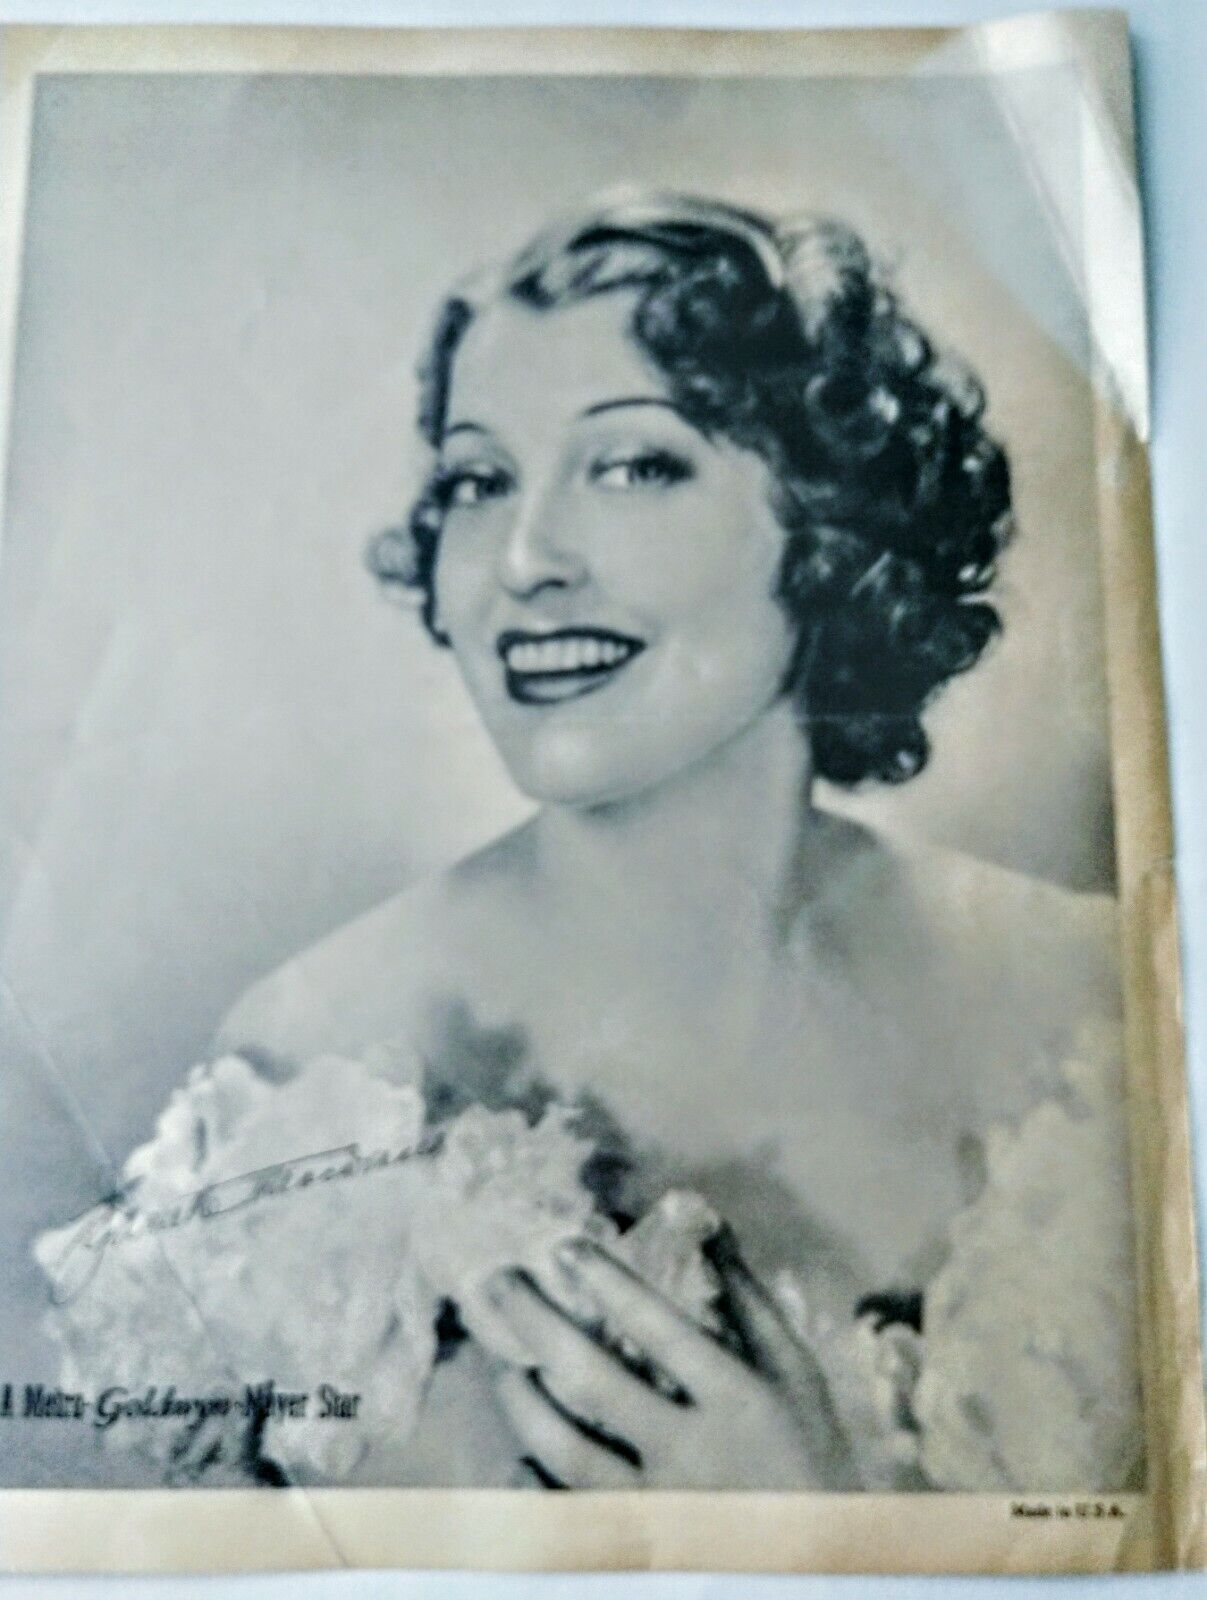 Jeanette MacDonald Publicity Photo From 1938 With Bonus Advertising  - $25.00